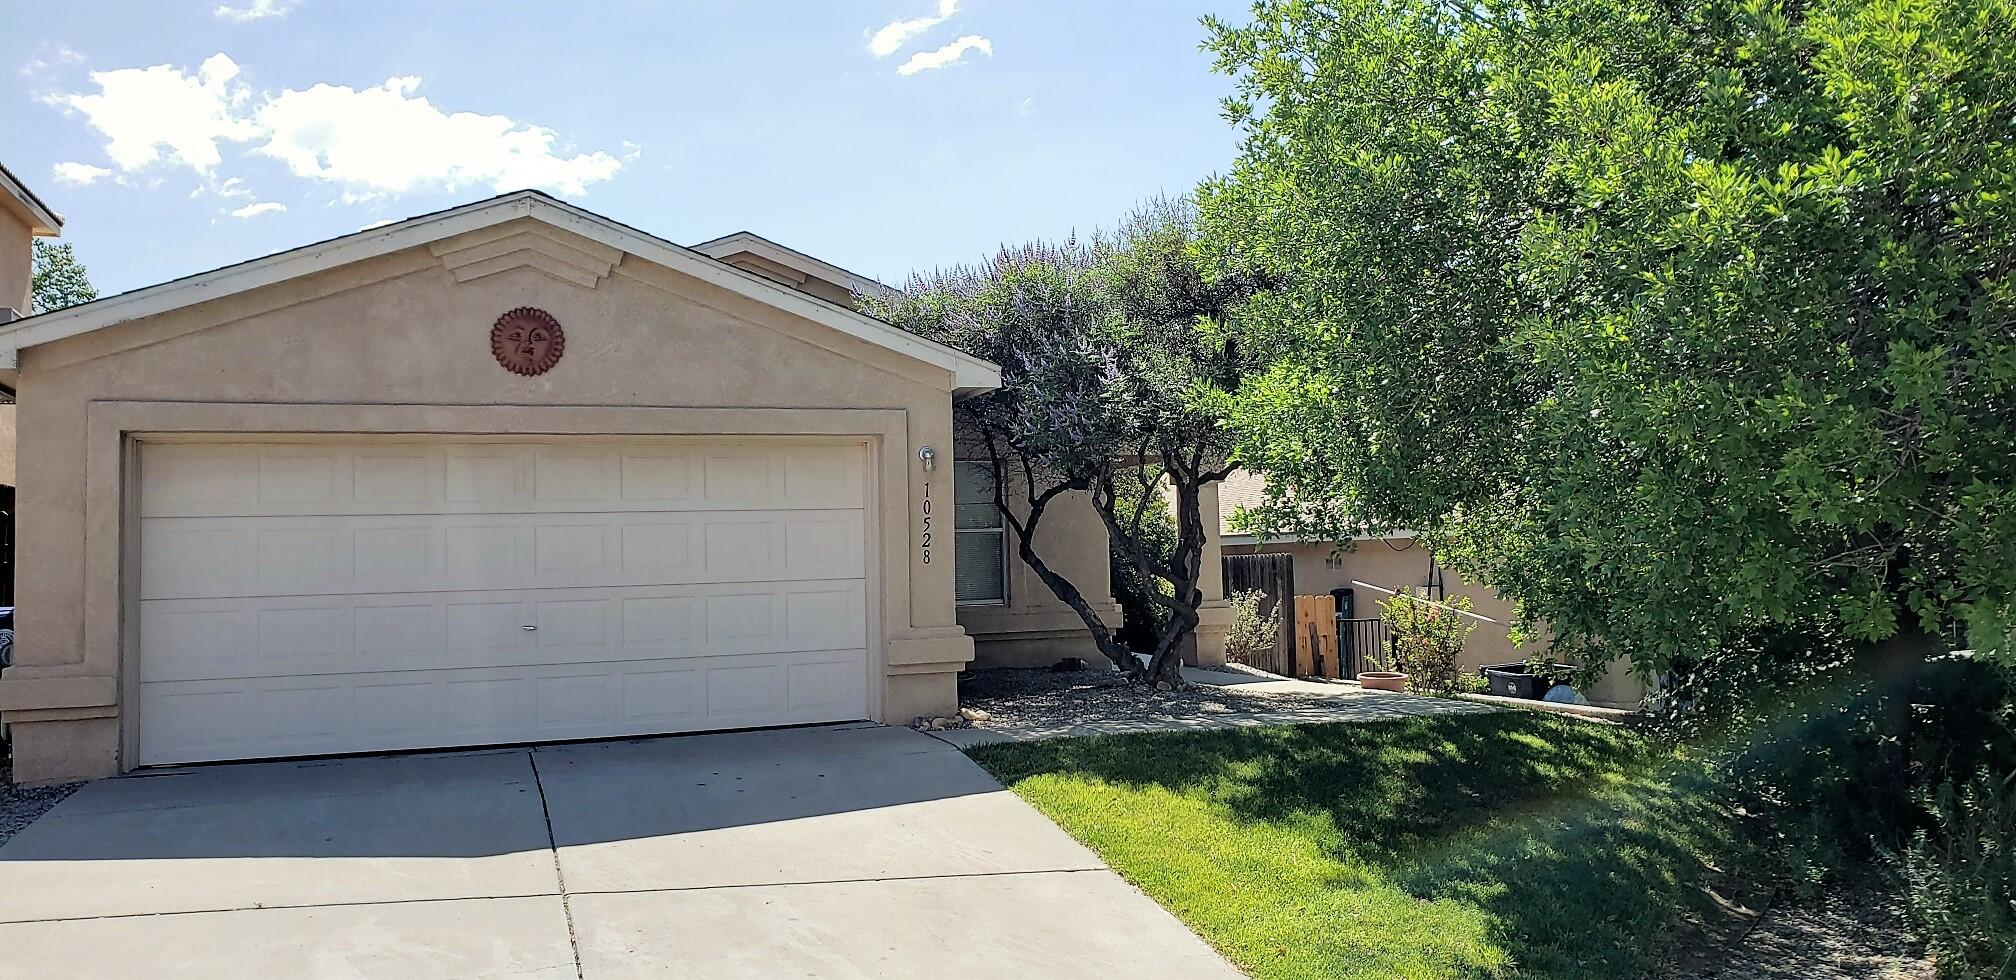 Super cozy 3 Bedroom Home with Views and Open Floor Plan in desirable Tuscany Ridge Subdivision.  Well maintained and lush Front and Back Yards. The Master Suite offers a Garden Tub and separate Shower! Many updates have been done over the last few years such as new Roof in 2018, new Furnace in 2020, Water Heater and Master Cooler in 2016 and a Water Softener. All Appliances are included. This Community is close to Stores and Restaurants.